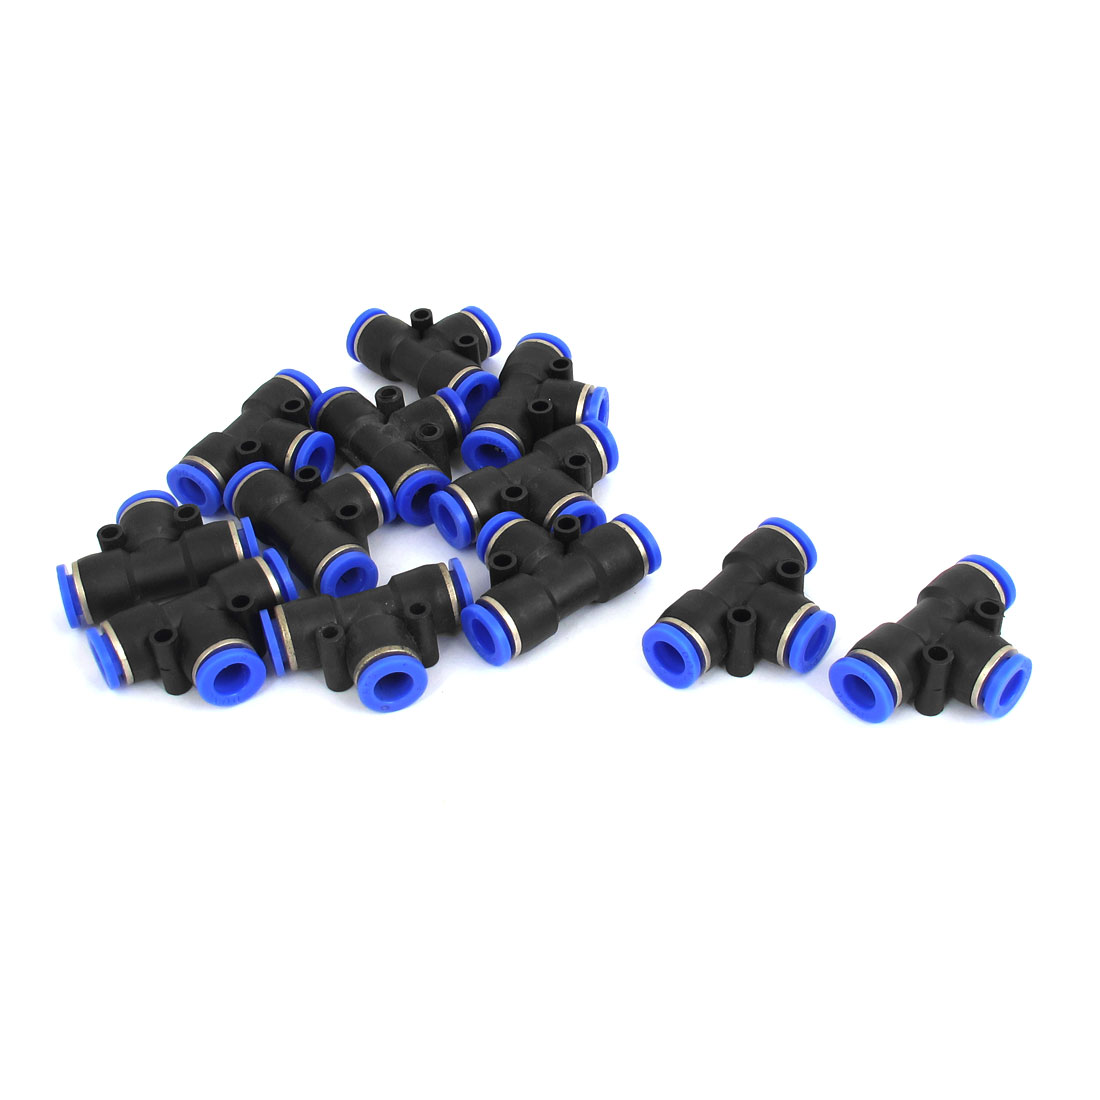 Pneumatic T Connector Air Tube Quick Release Fittings 8mm Dia 12pcs